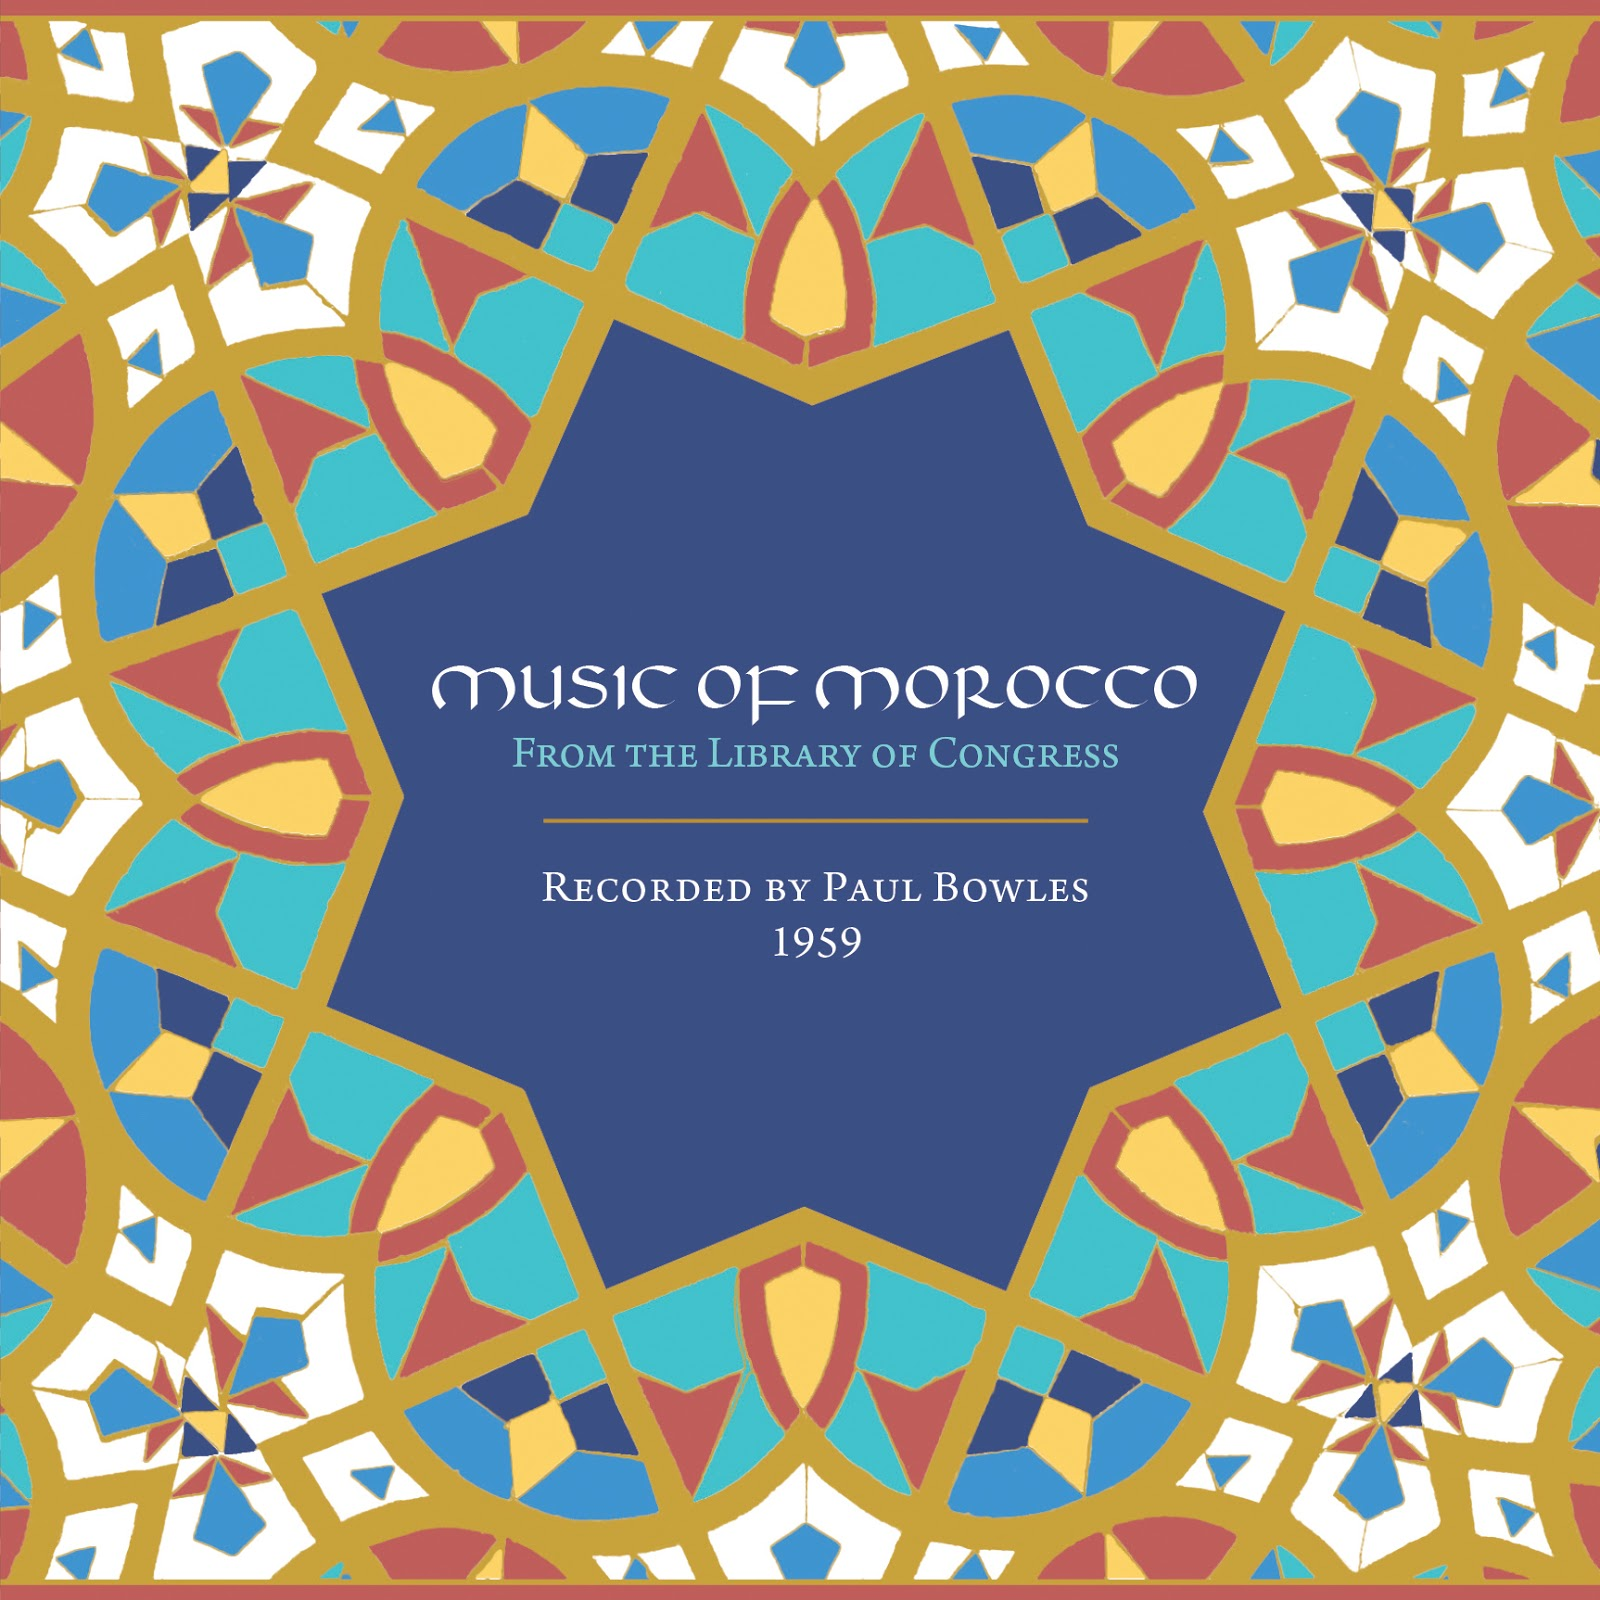 Music of Morocco from the Library of Congress